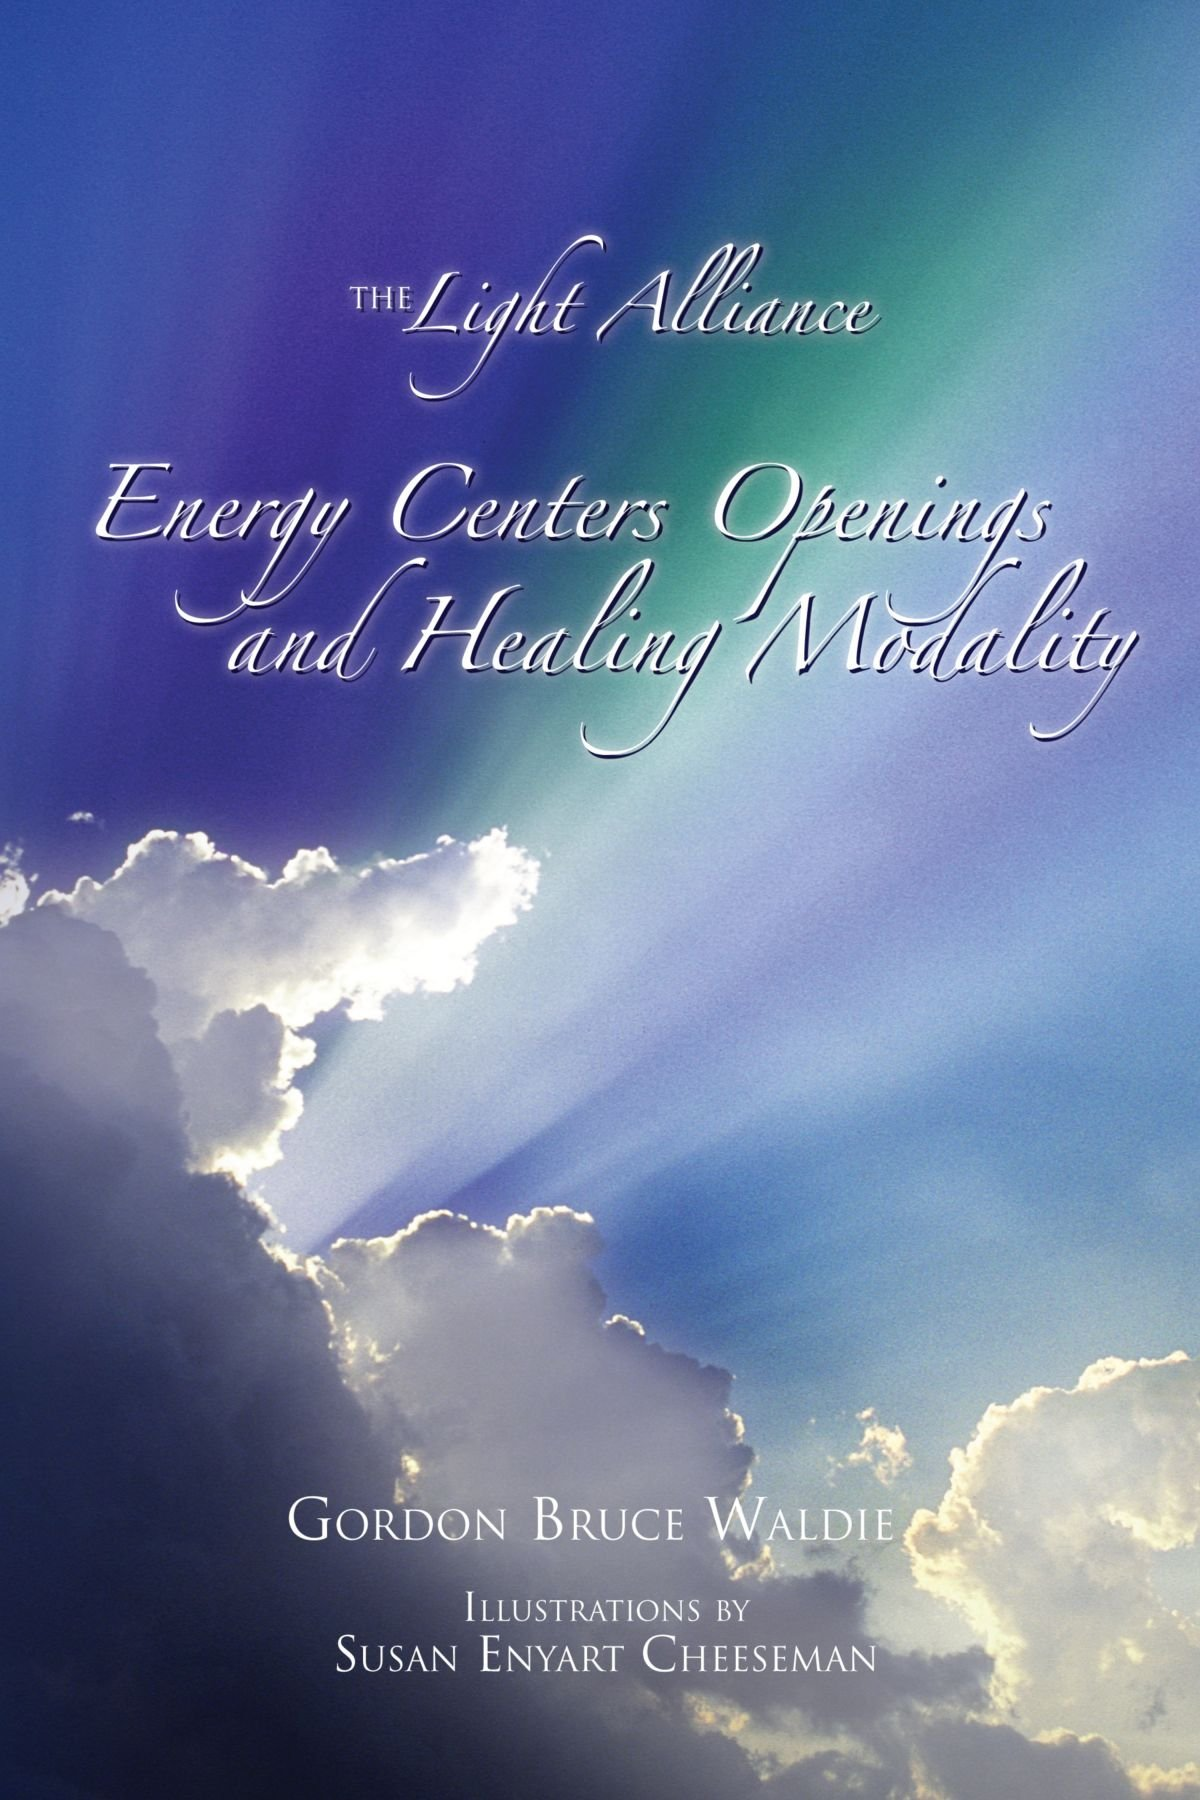 The Light Alliance: Energy Centers Openings And Healing Modality pdf